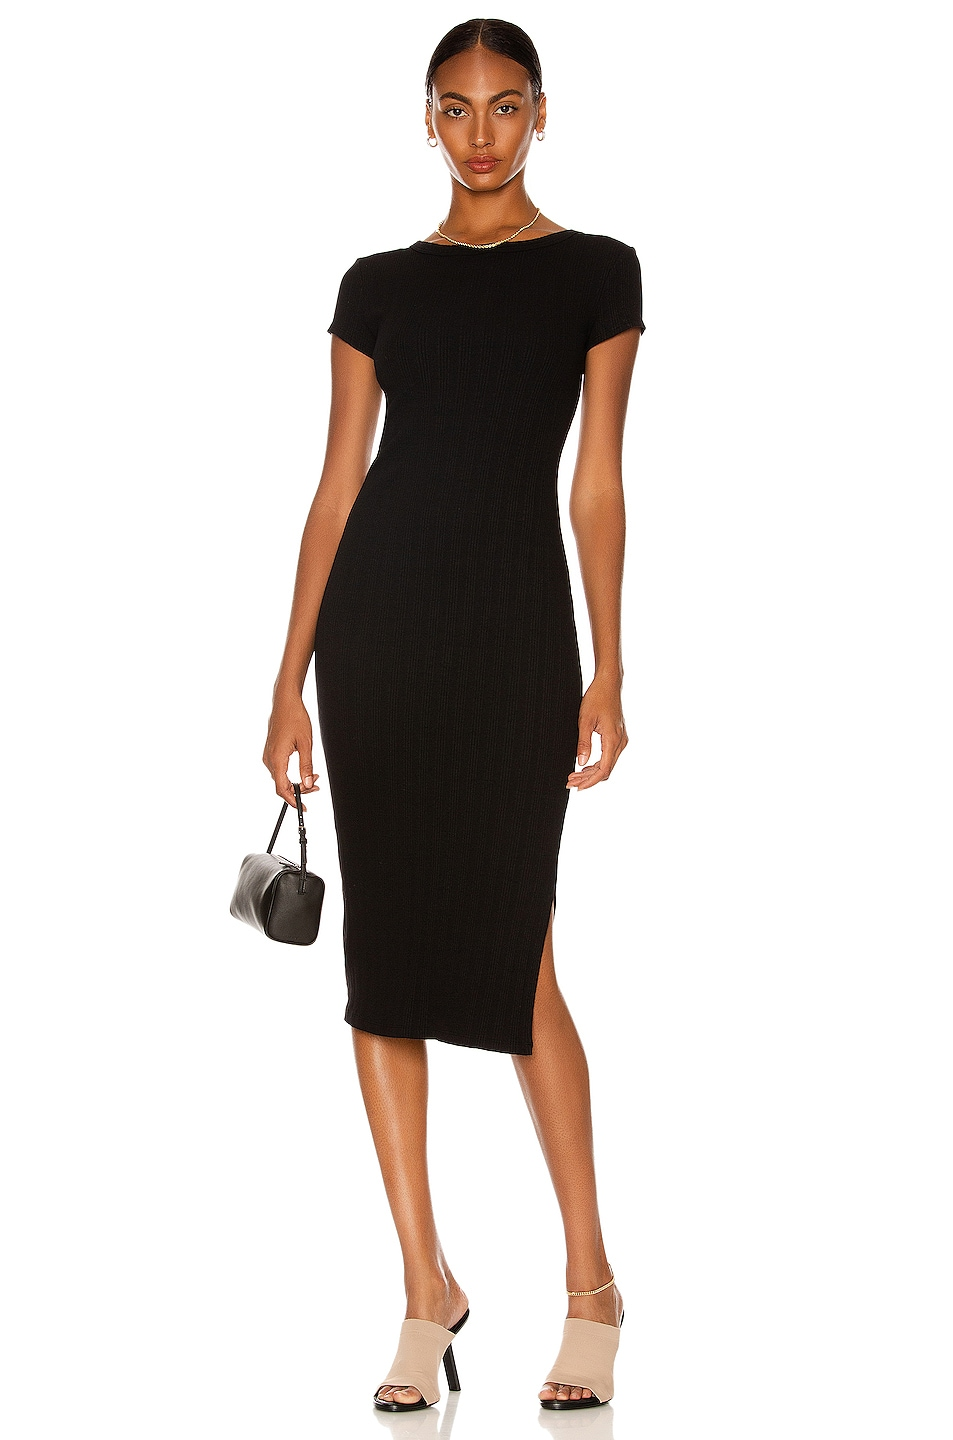 Image 1 of Enza Costa Compact Cotton Rib Cap Sleeve Dress in Black